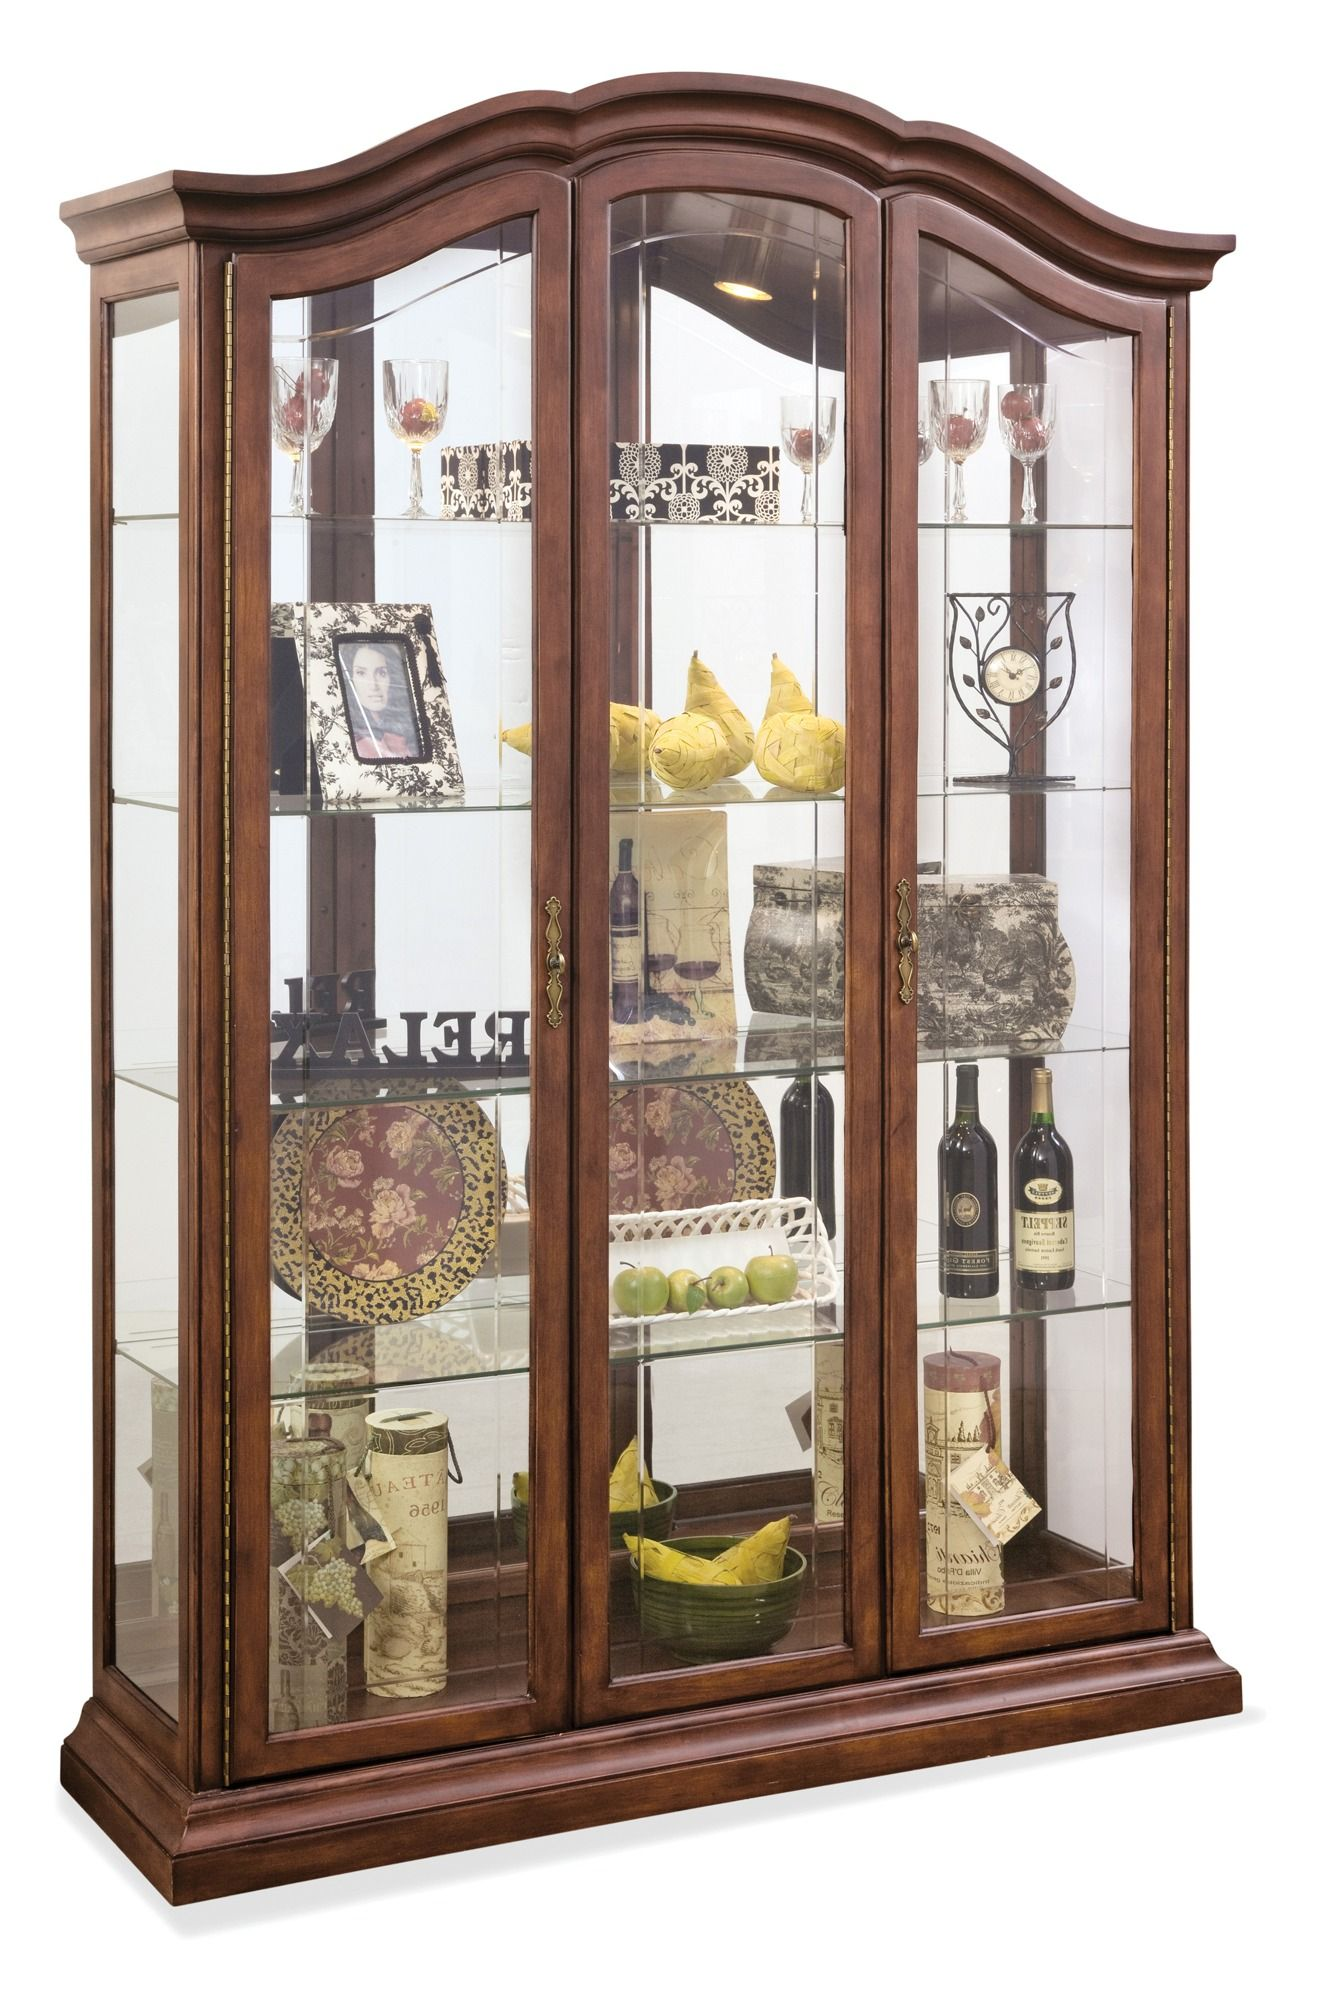 Oxford Large Curio Cabinet in Cherry | Philip Reinisch | Home ...